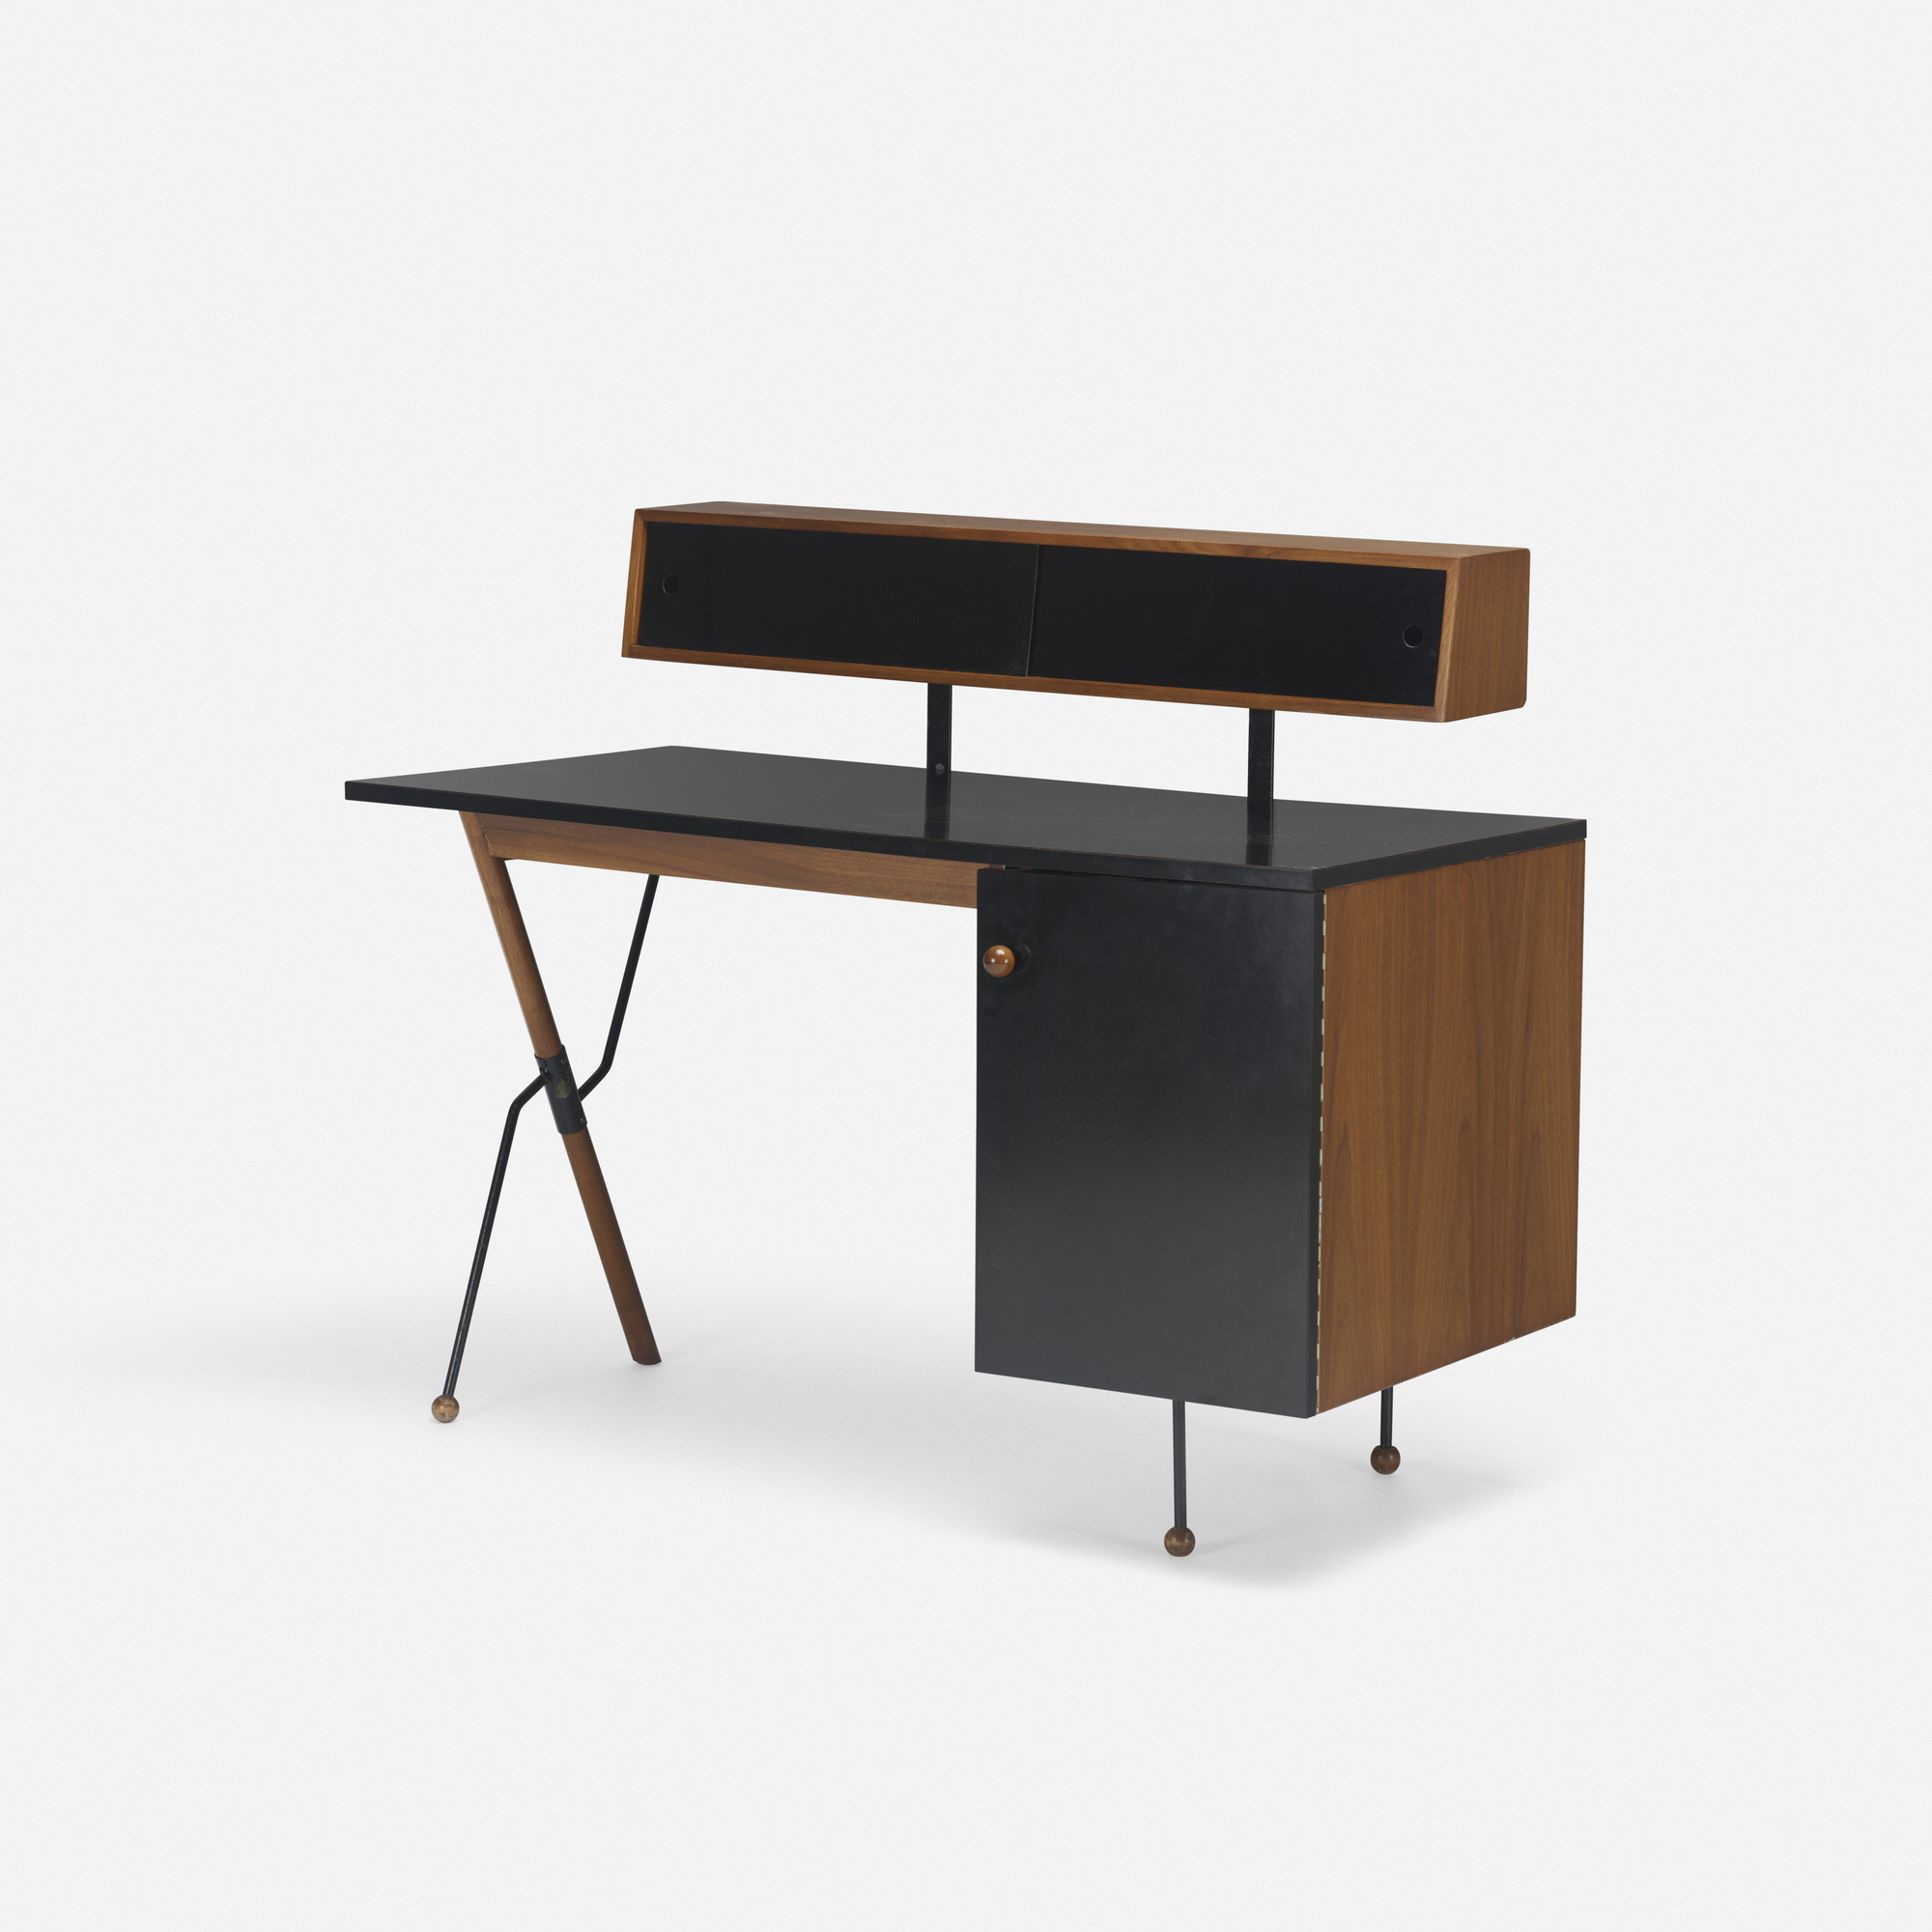 191: Greta Magnusson Grossman / desk (1 of 2)